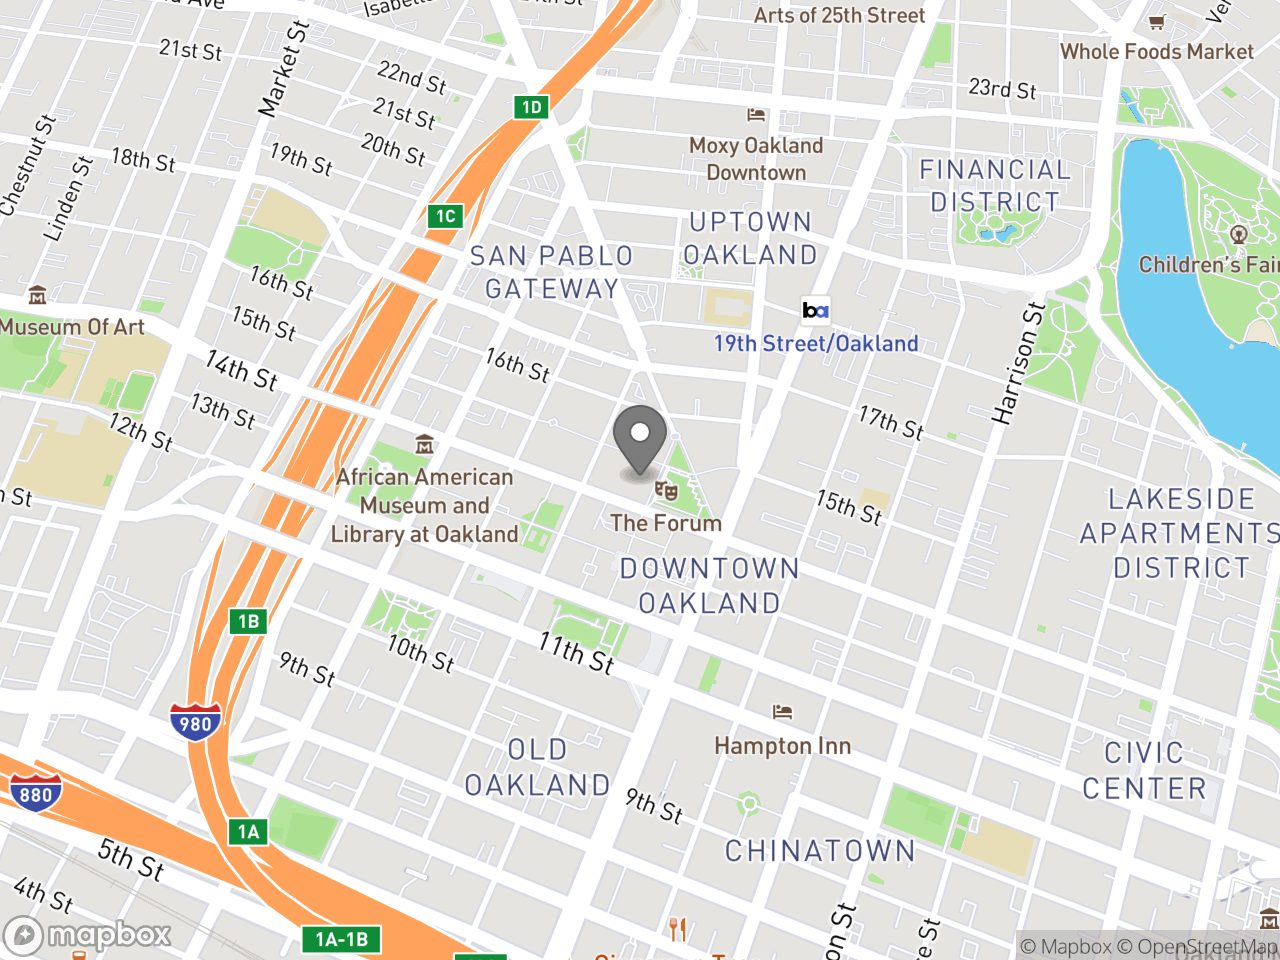 Map image for February 4, 2019 Landmarks Preservation Advisory Board Meeting, located at 1 Frank H Ogawa Plaza in Oakland, CA 94612